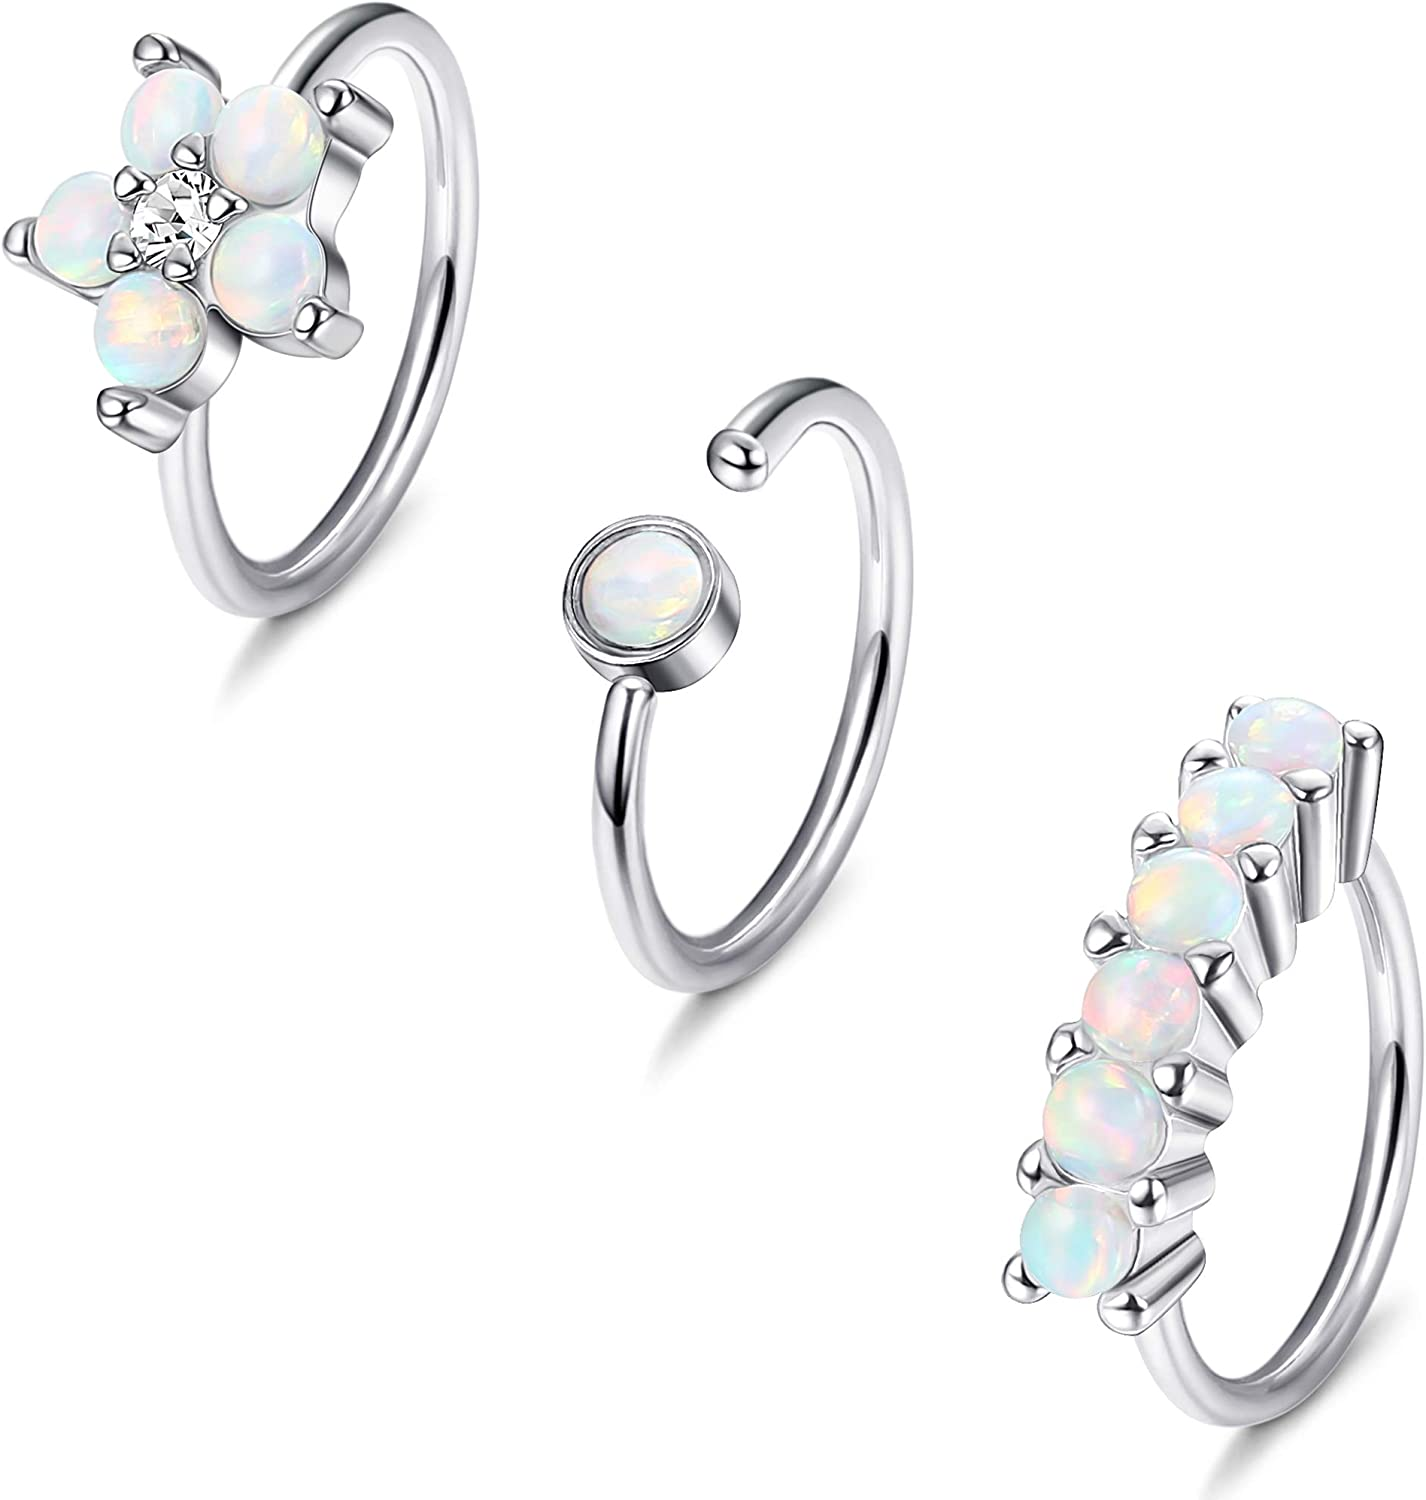 LOYALLOOK 3Pcs 316L Surgical Steel Opal Glitter Nose Ring Piercing Hoop Ring for Nose Cartilage Earring Set